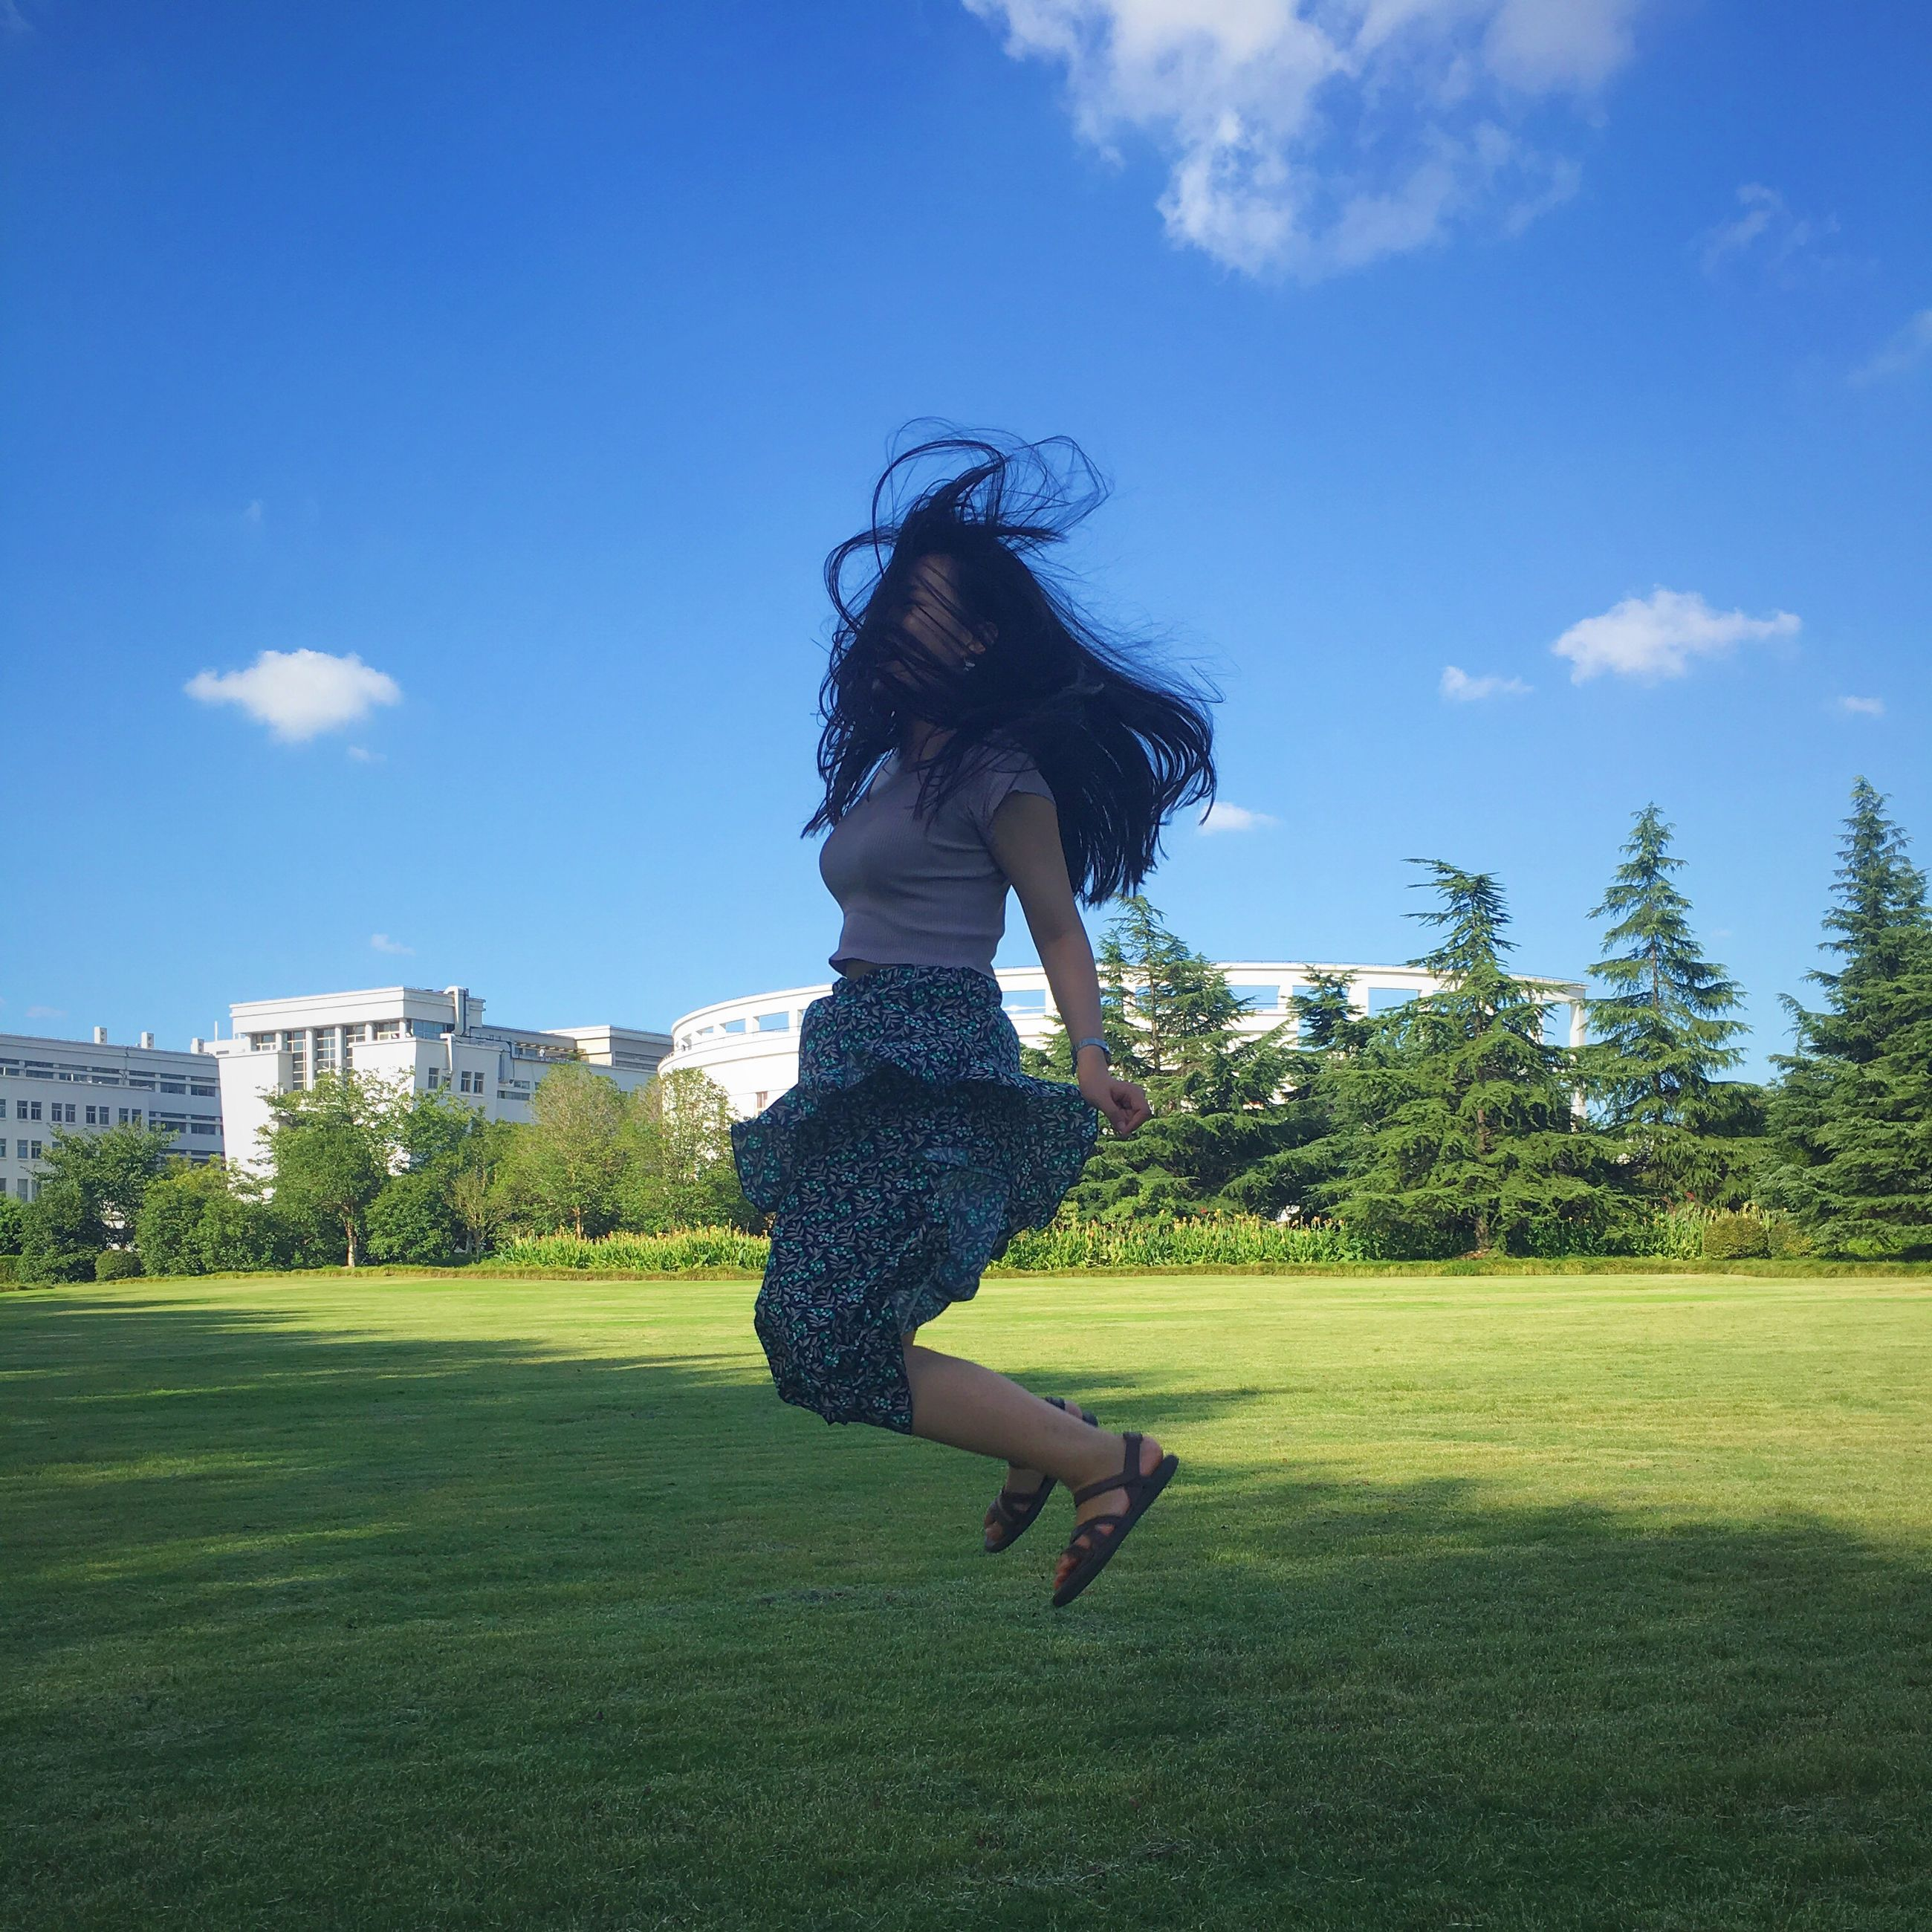 REAR VIEW OF GIRL JUMPING ON GRASSY FIELD